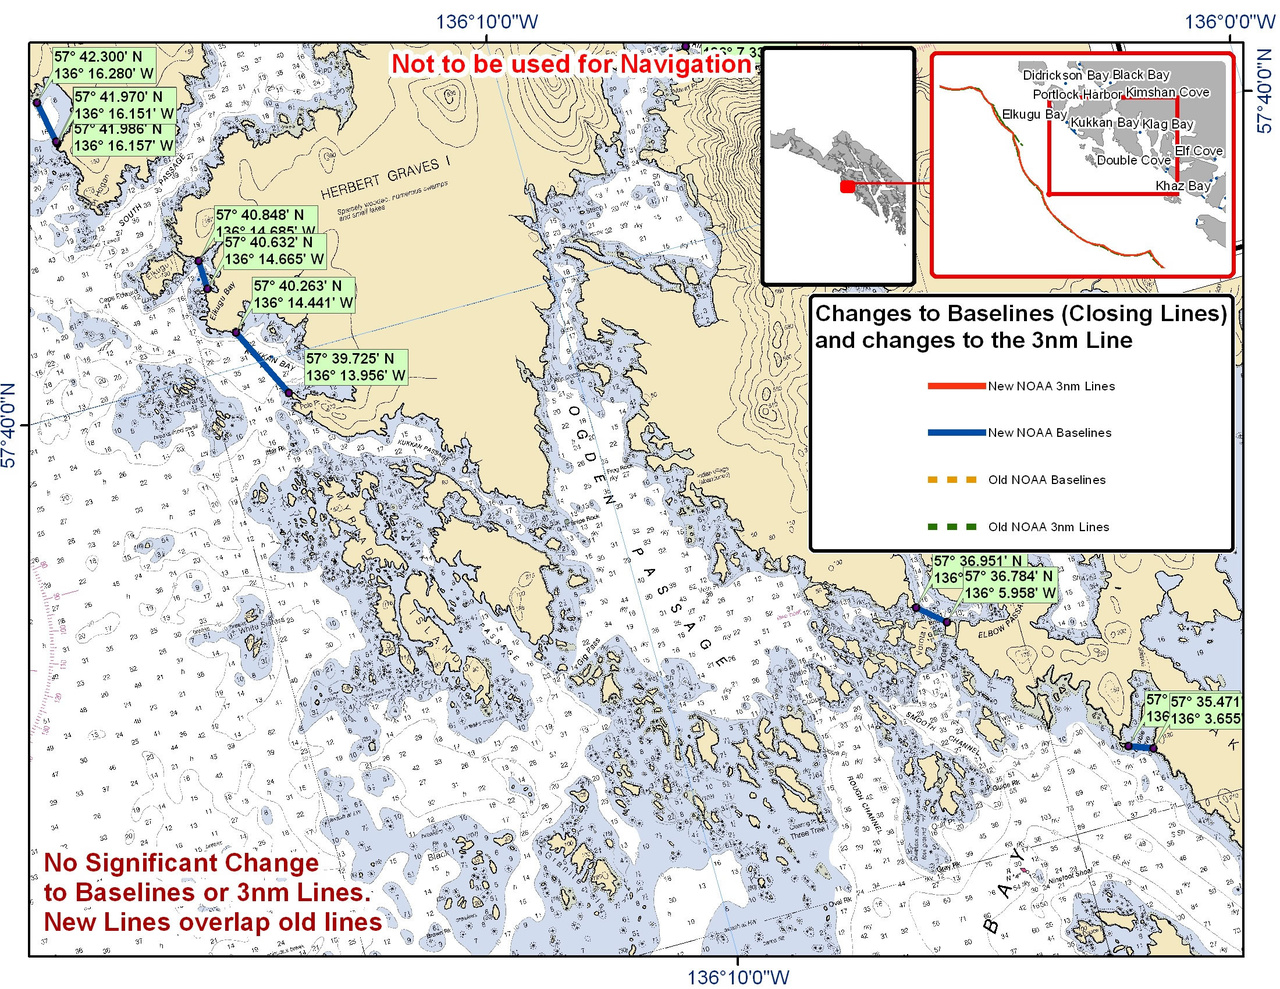 Chart for Klag Bay and the Surrounding Area